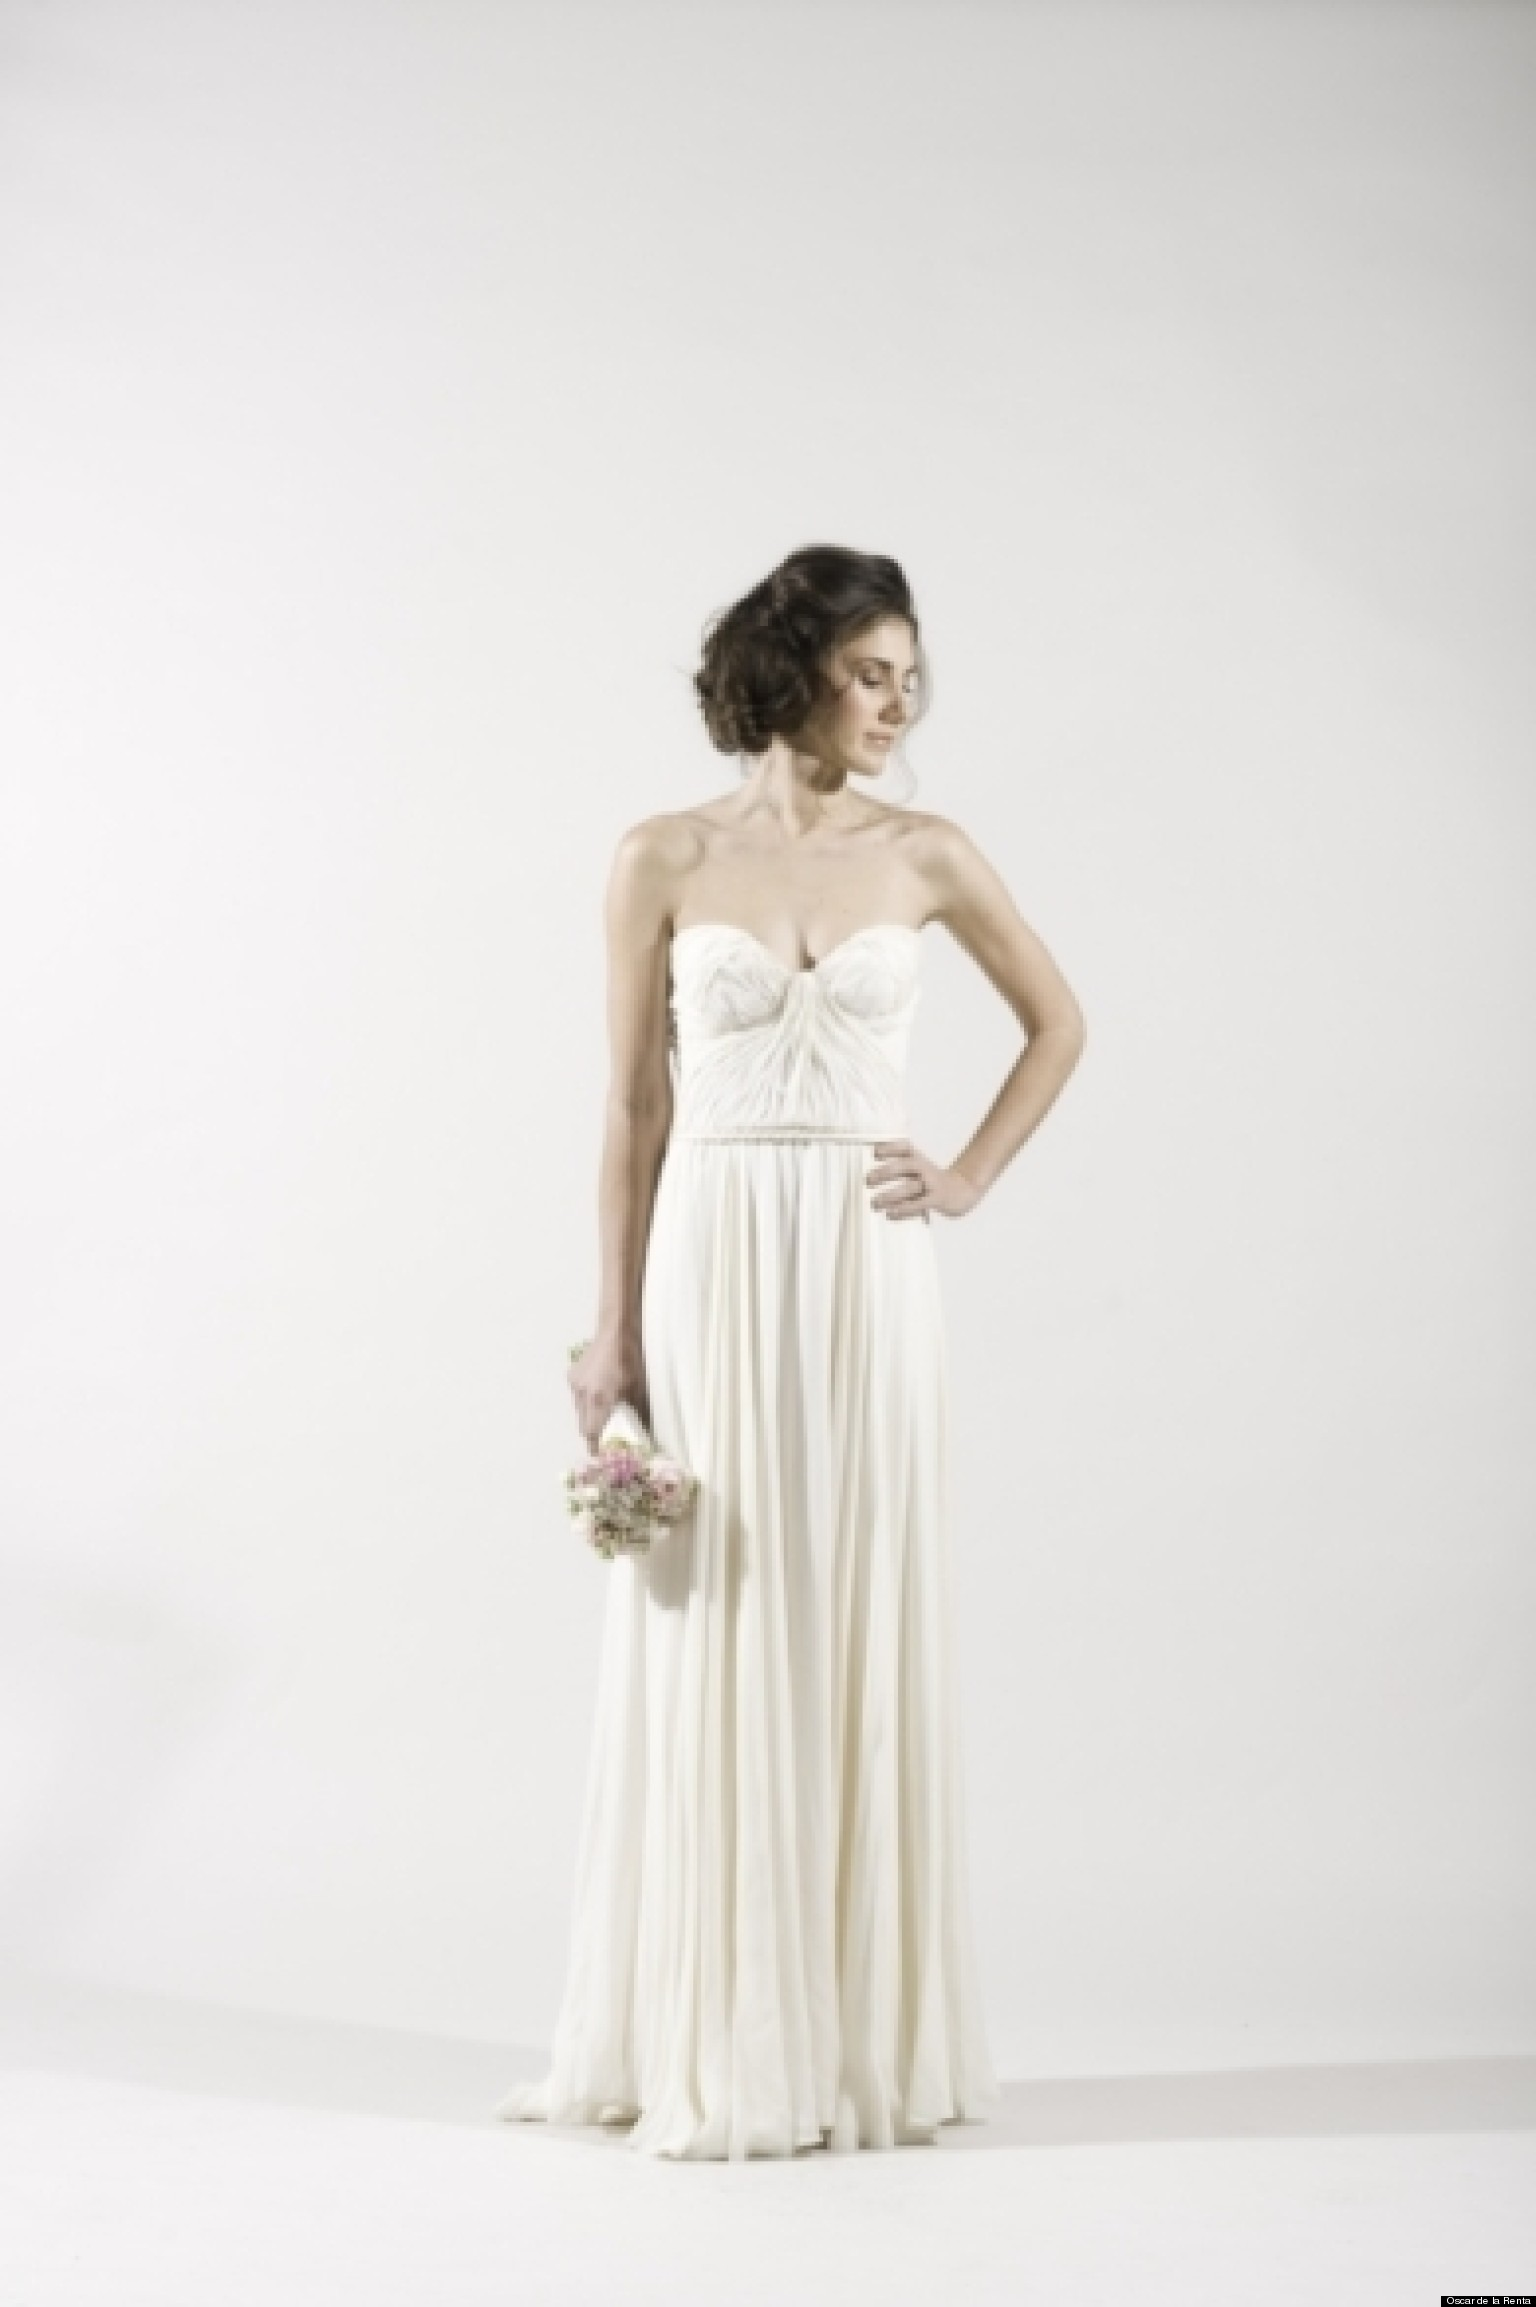 grecian wedding dresses n grecian style wedding dress Grecian Wedding Dresses For A Goddess Inspired Look PHOTOS HuffPost